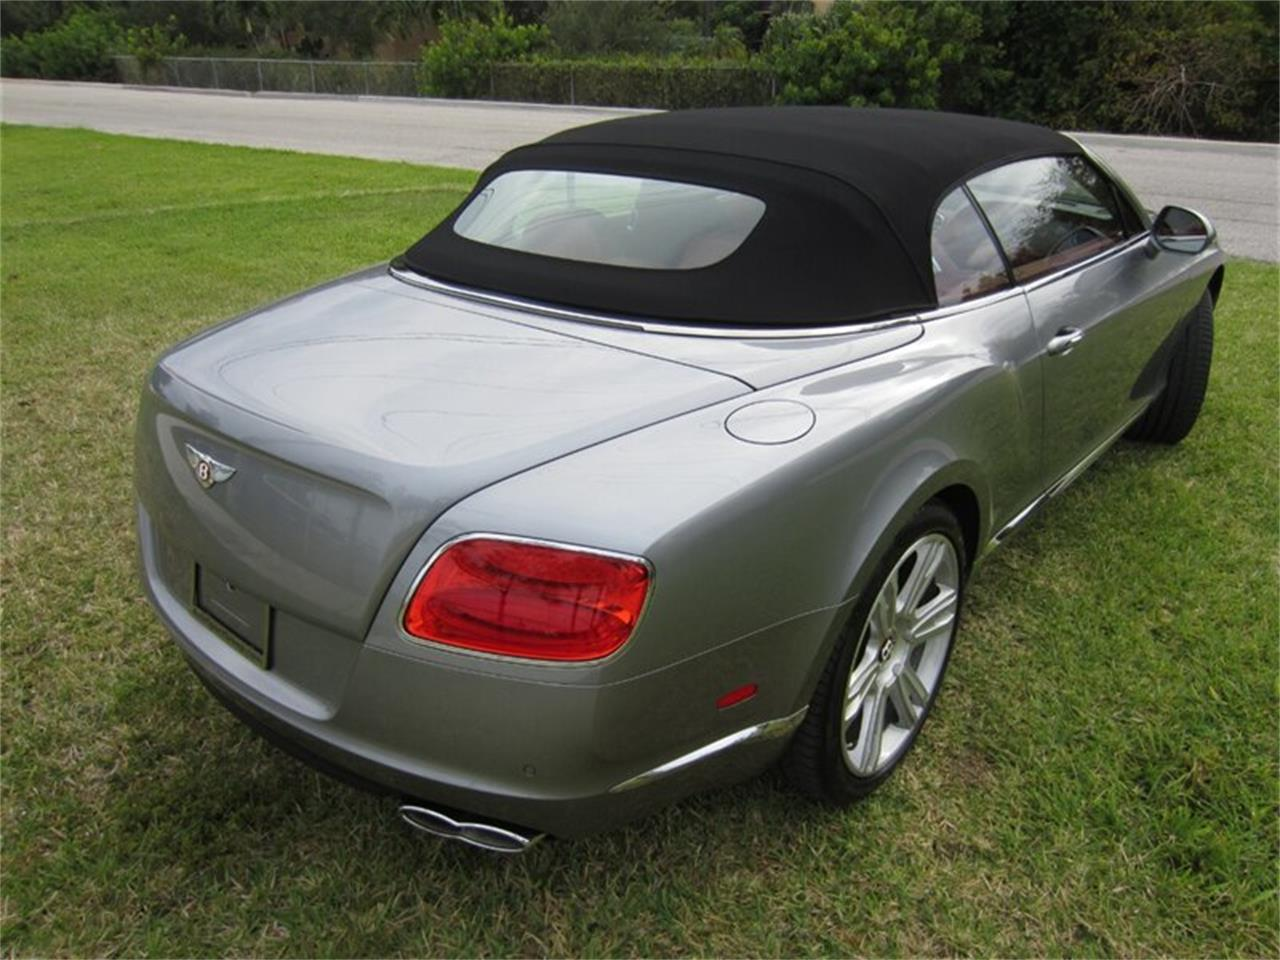 2013 Bentley Continental GTC V8 for sale in Delray Beach, FL – photo 21